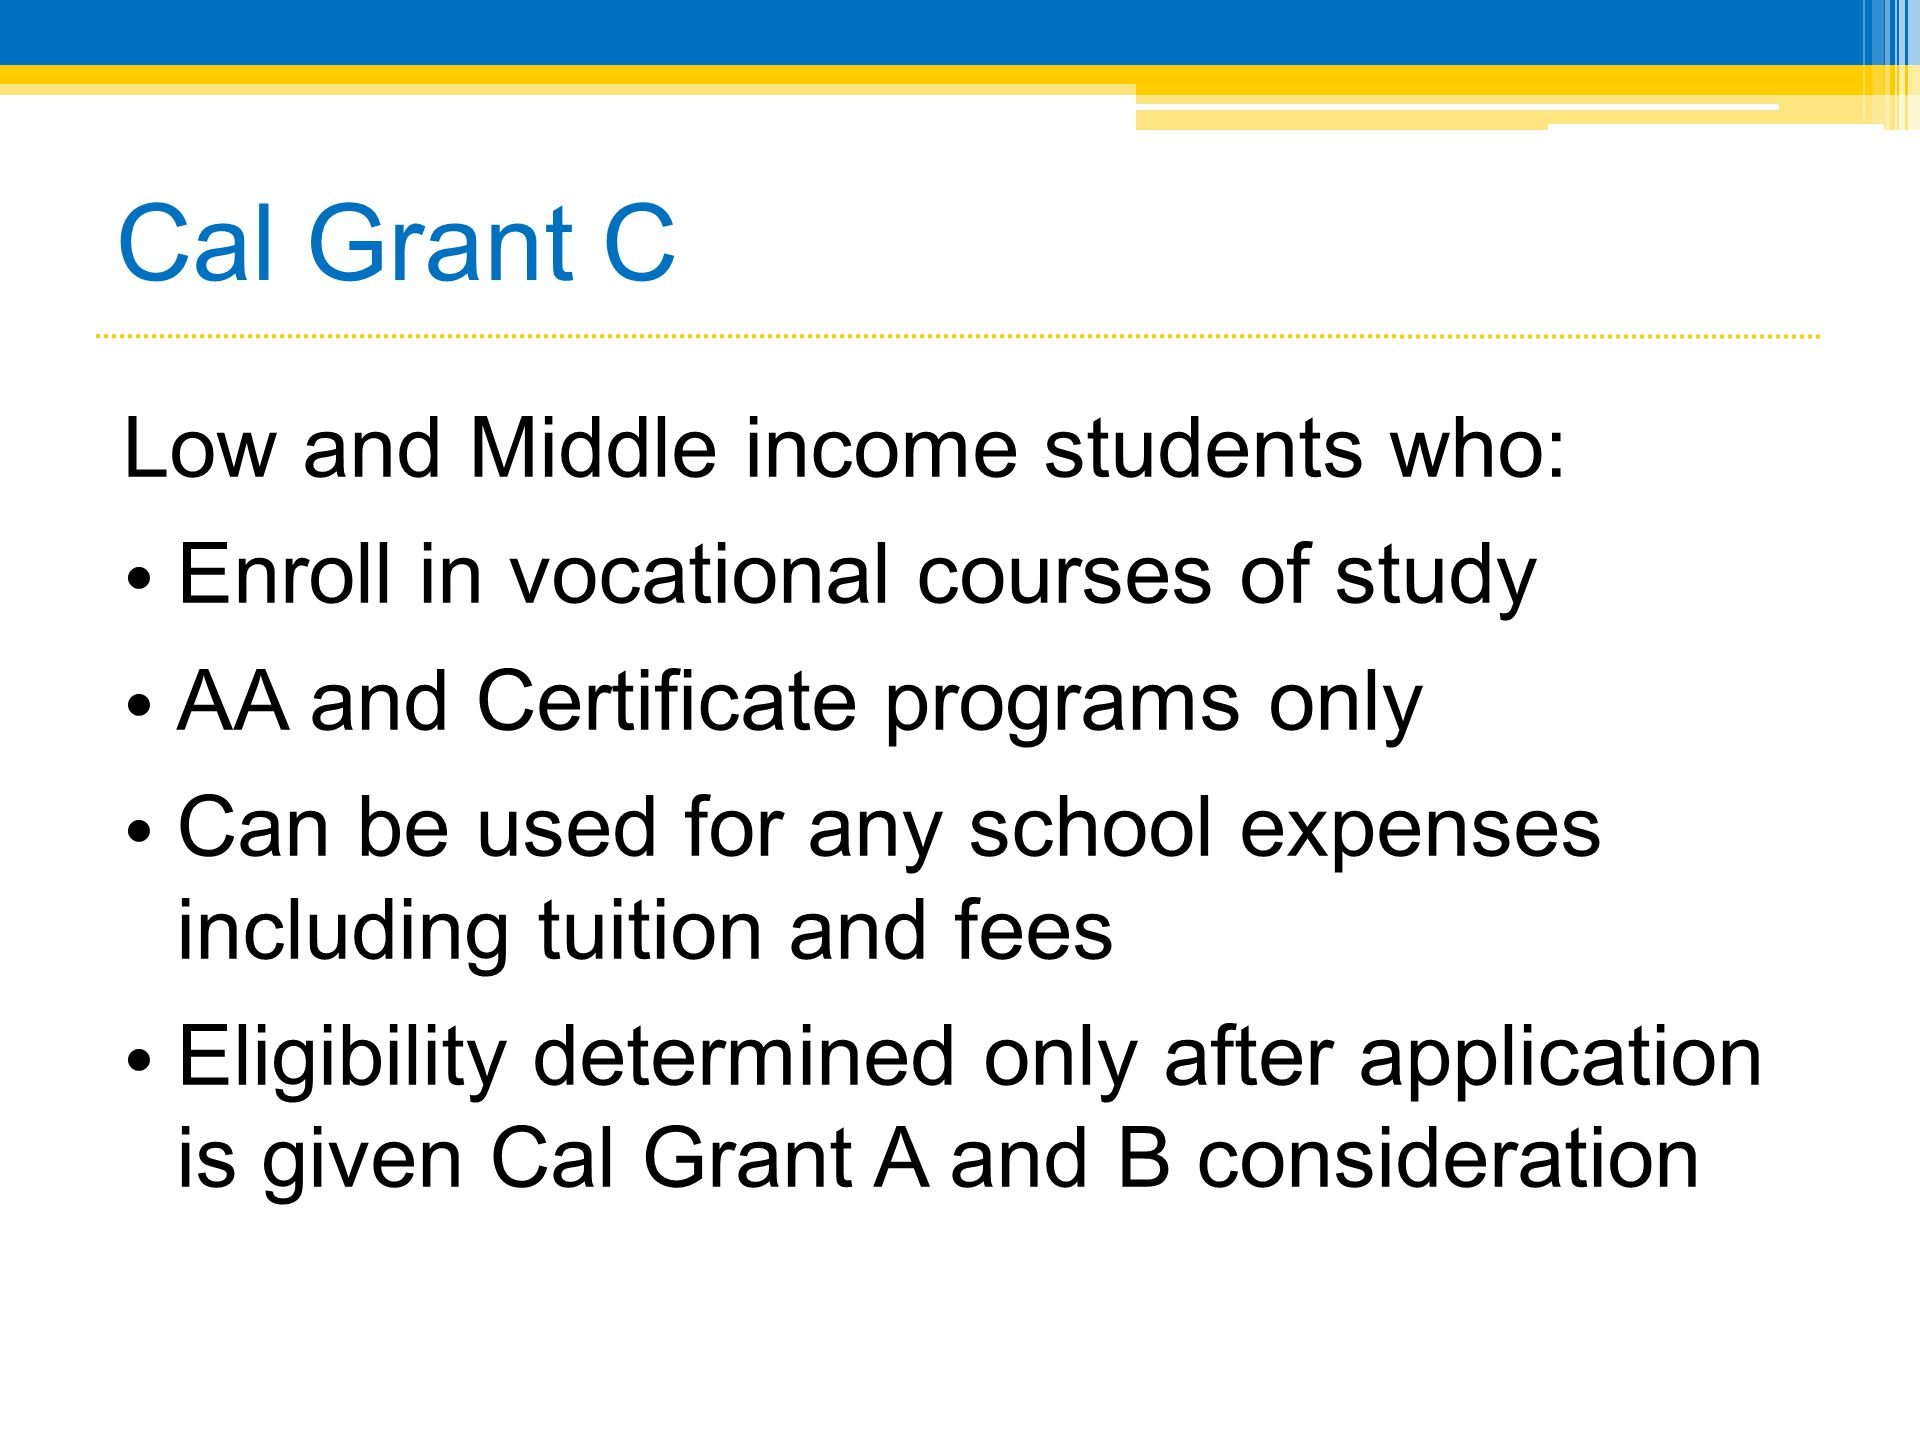 Cal Grant C Low and Middle income students who: • Enroll in vocational courses of study • AA and Certificate programs only • Can be used for any schoo